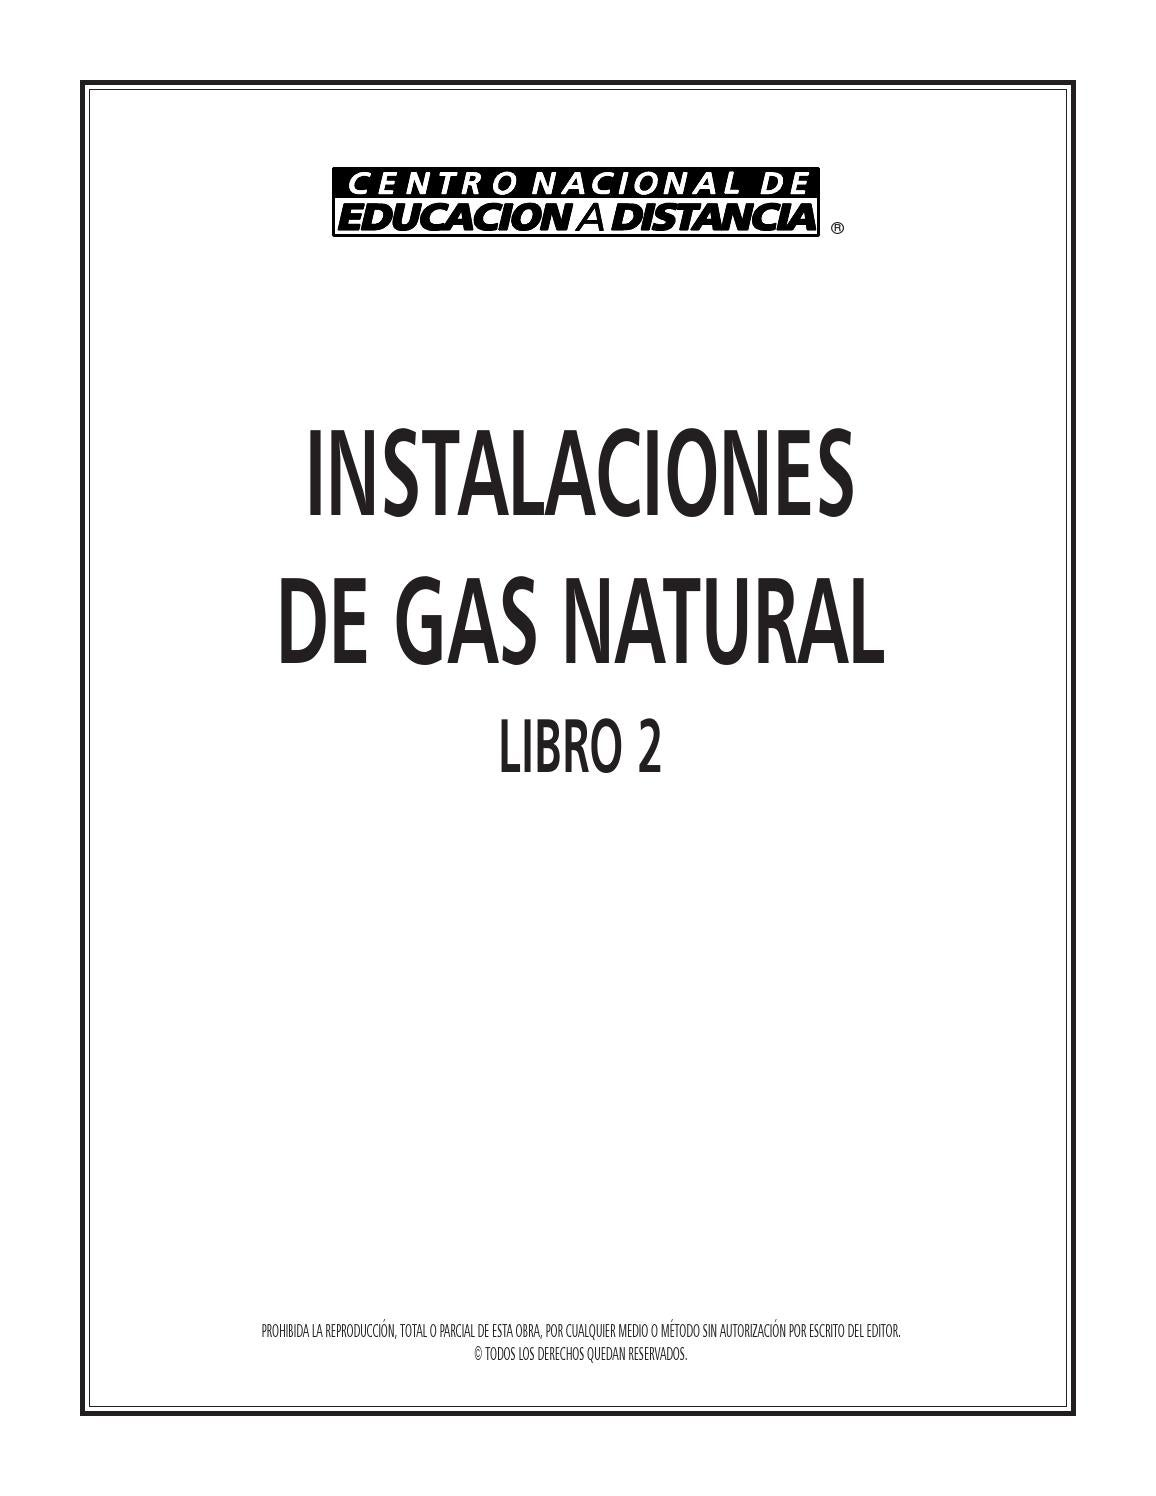 gas natural 2 by flavio fuentes guizado issuu